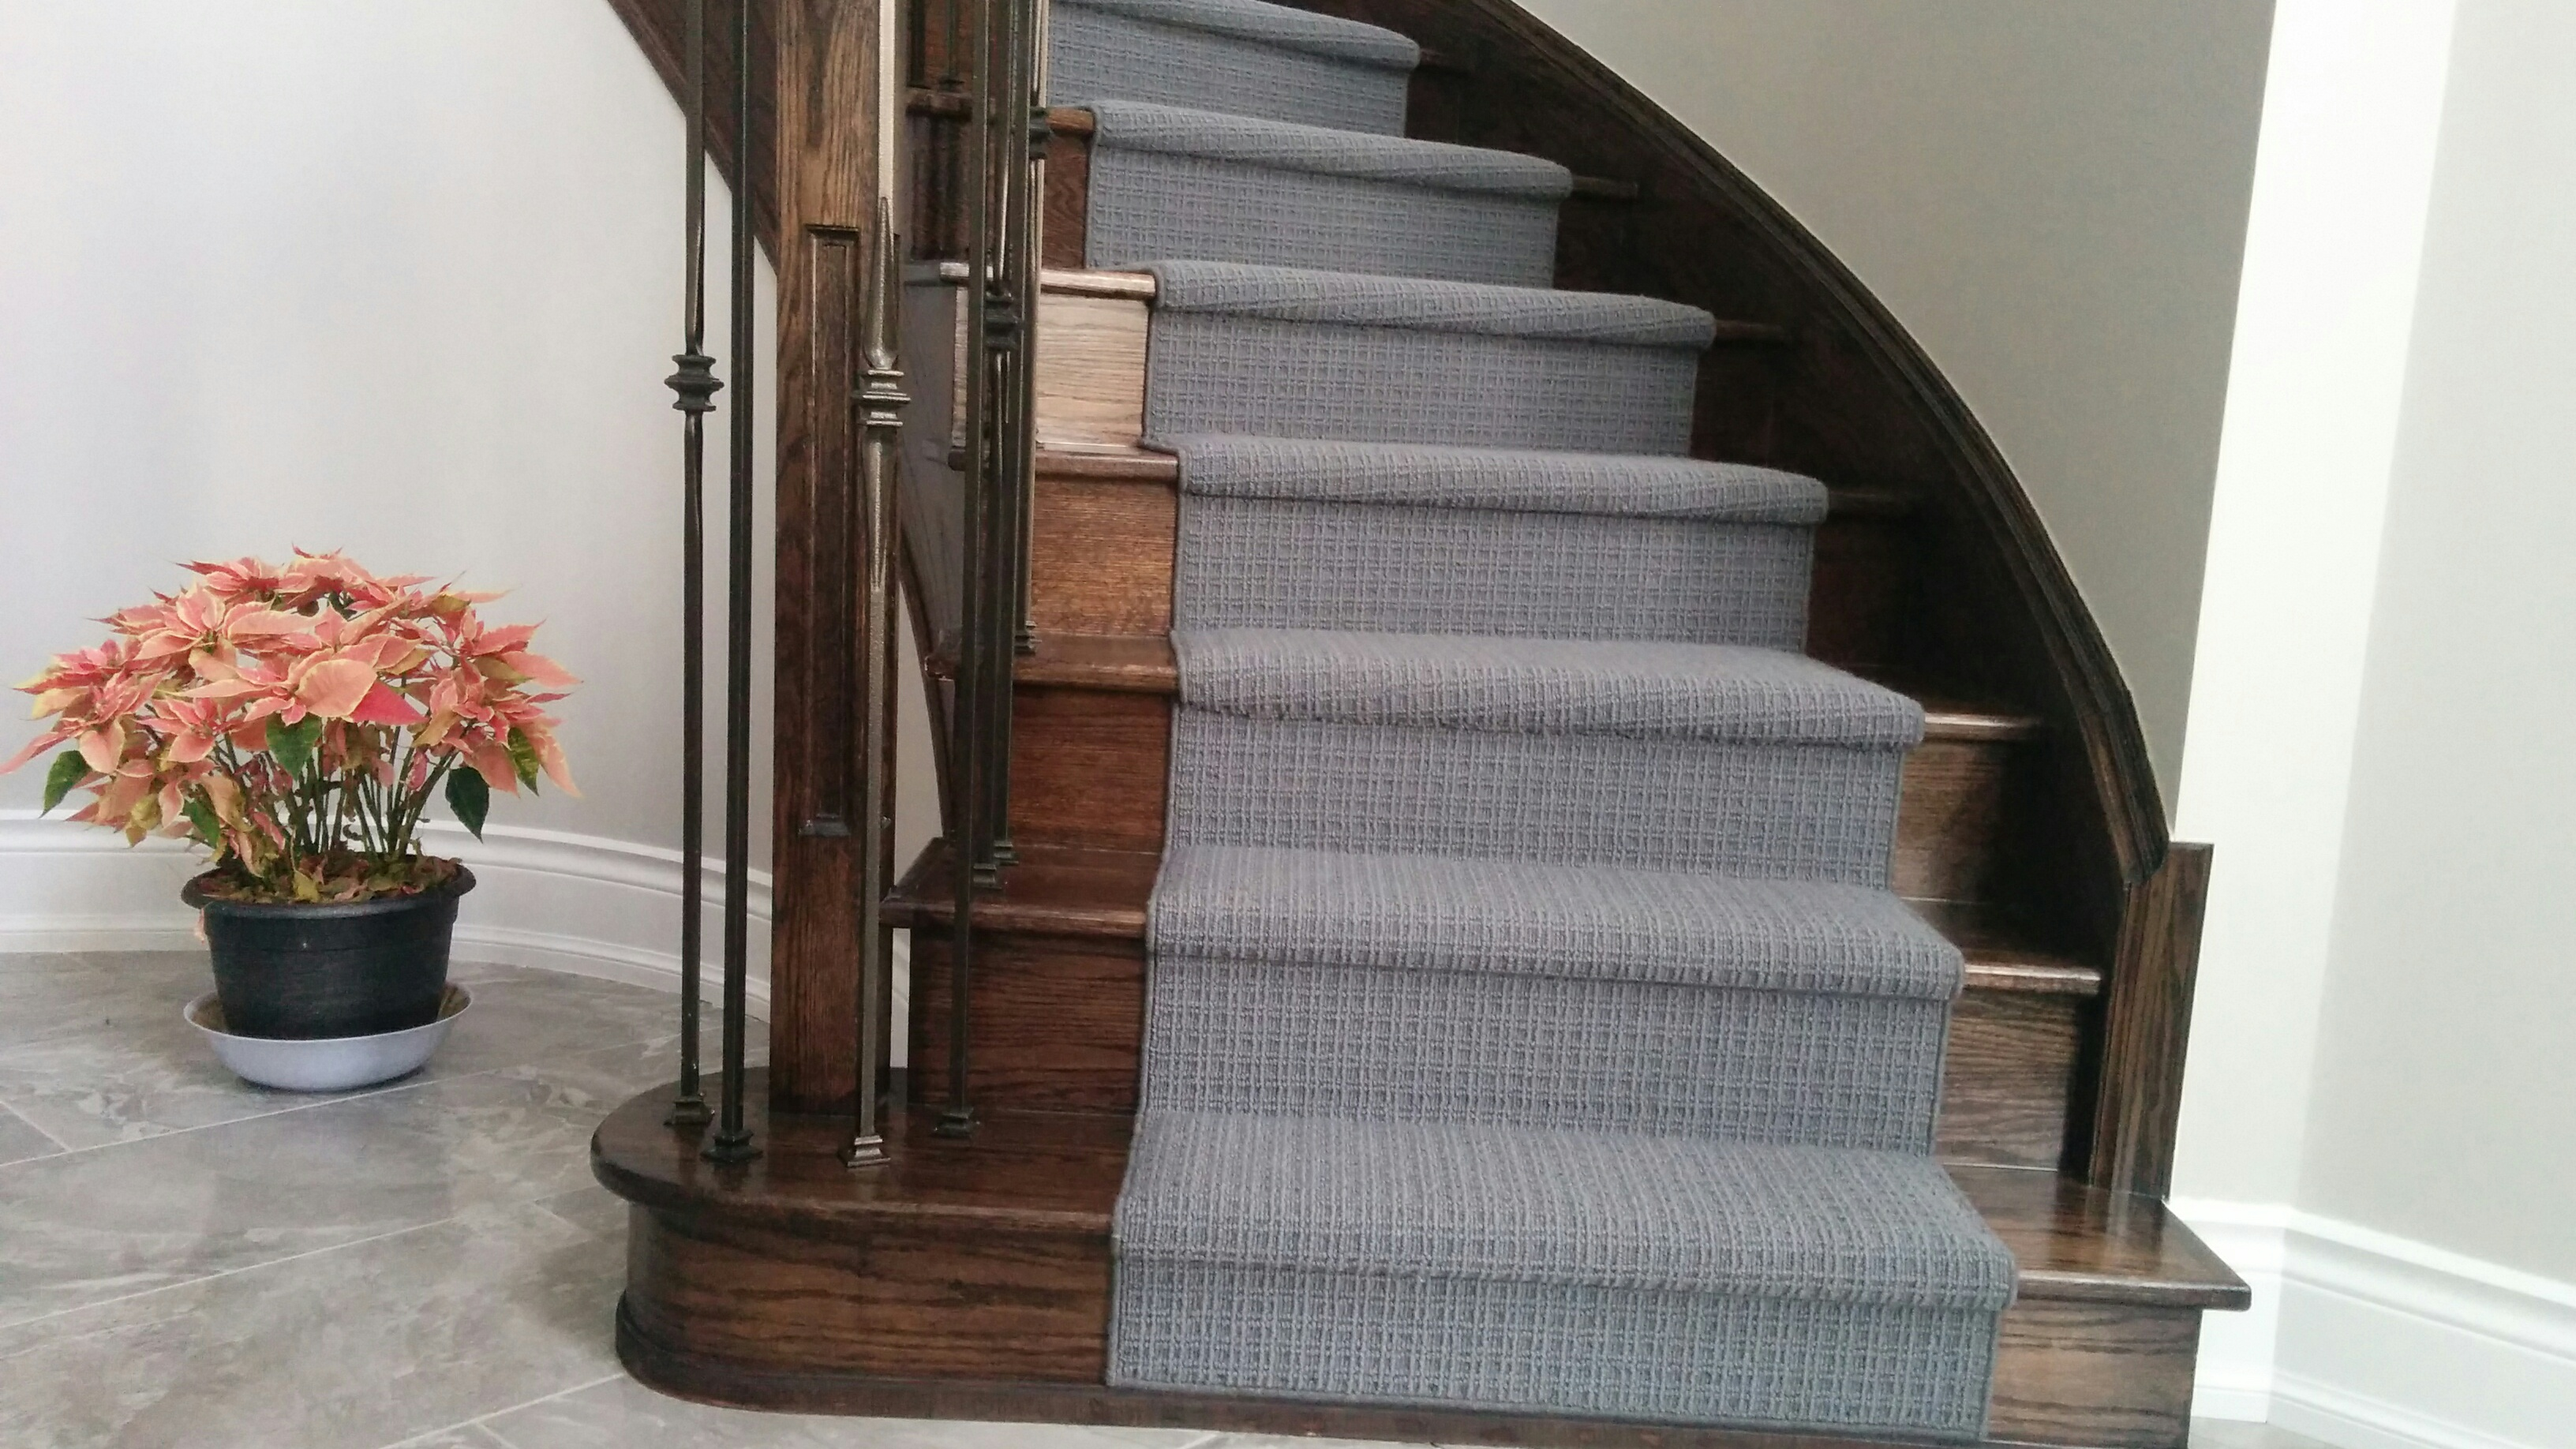 Cotemporary Carpet Runner for Stairs and hallway